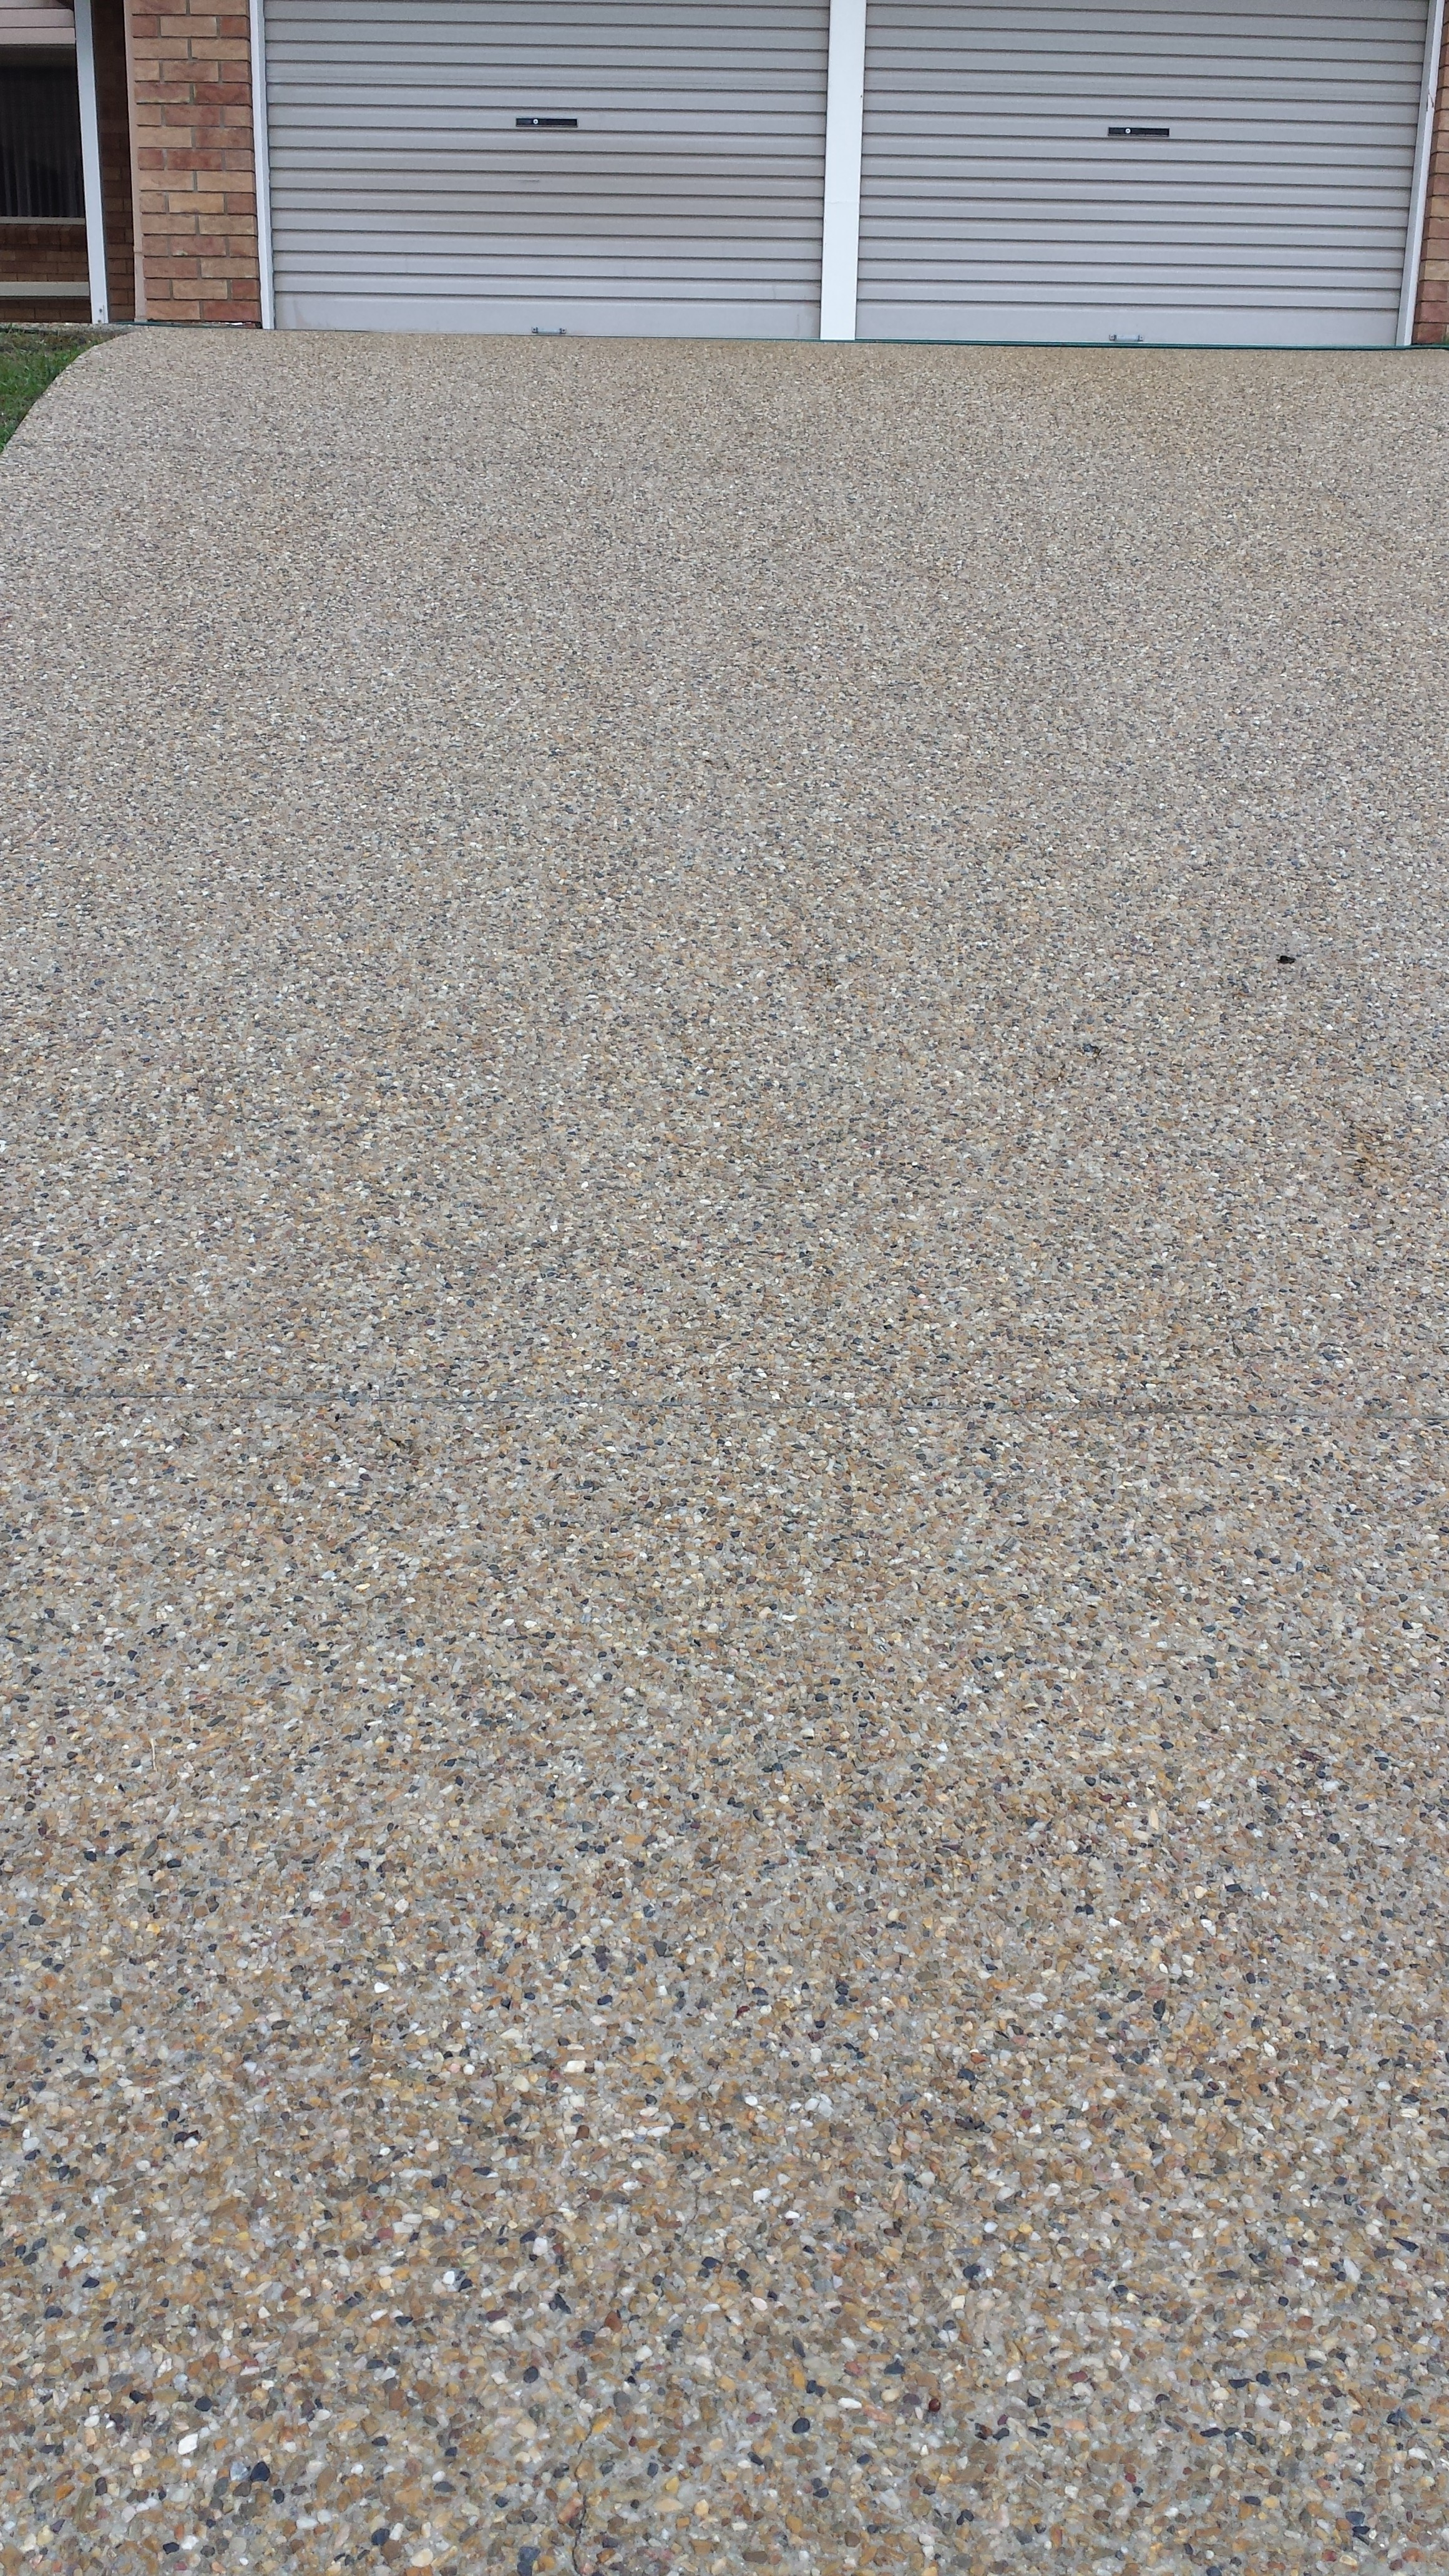 Driveway cleaning services Queensland